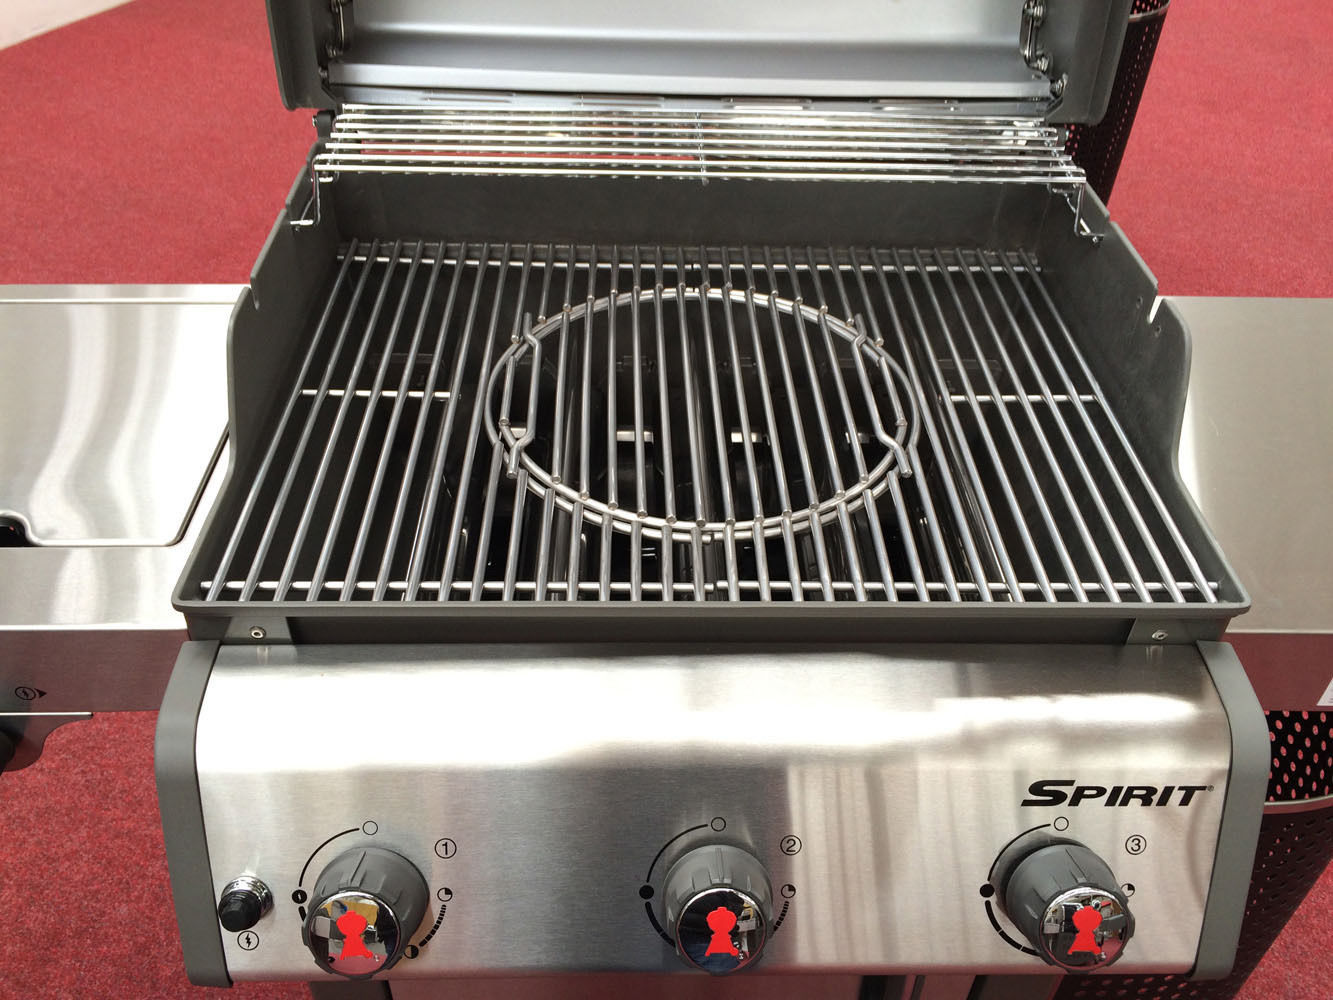 Weber Spirit Premium S-320 GBS gas BBQ - The Barbecue Store